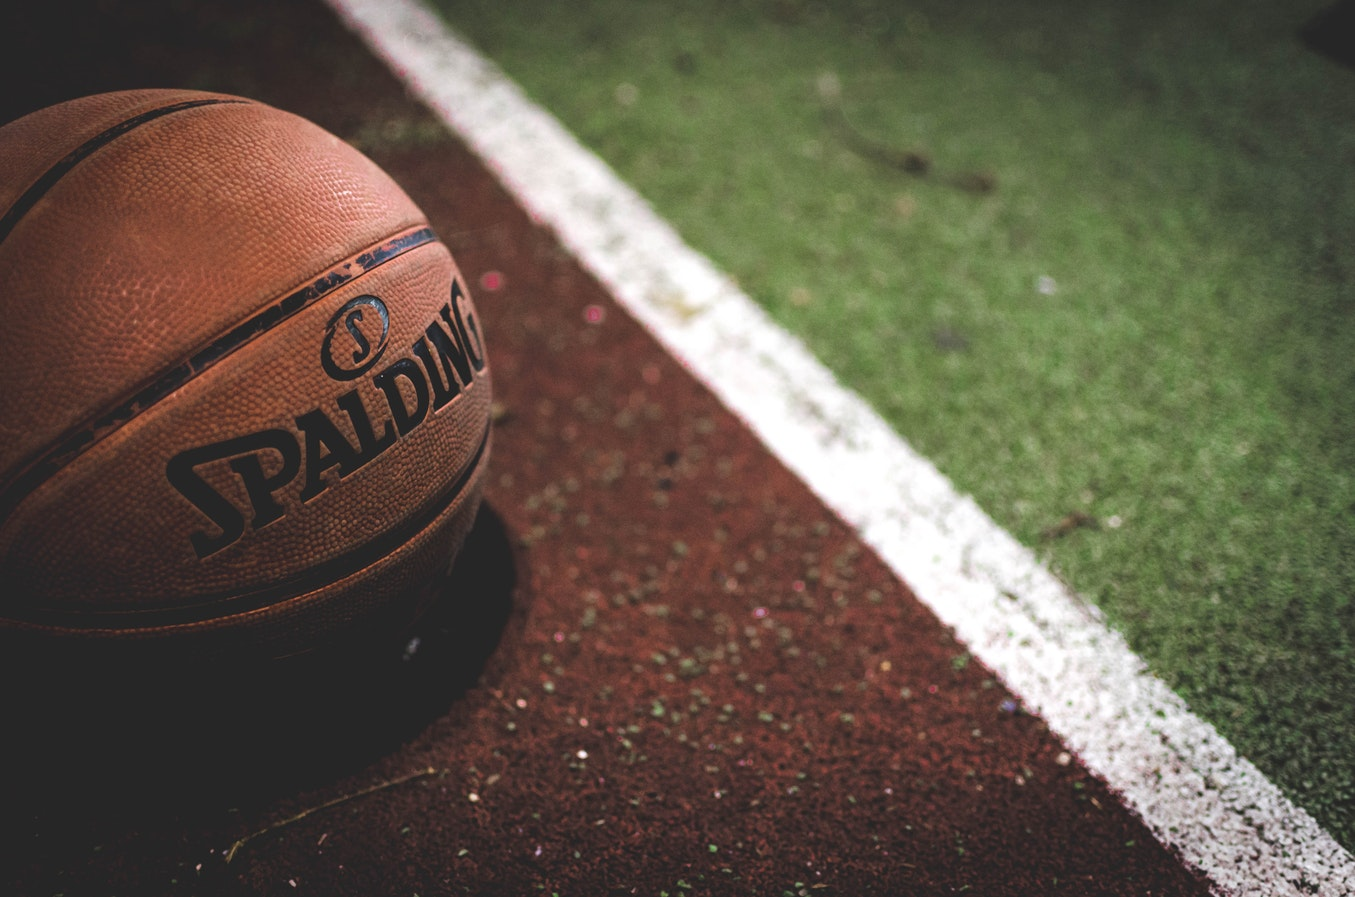 A basketball on the basketball court. The benefits of the outdoors for seniors are very high.